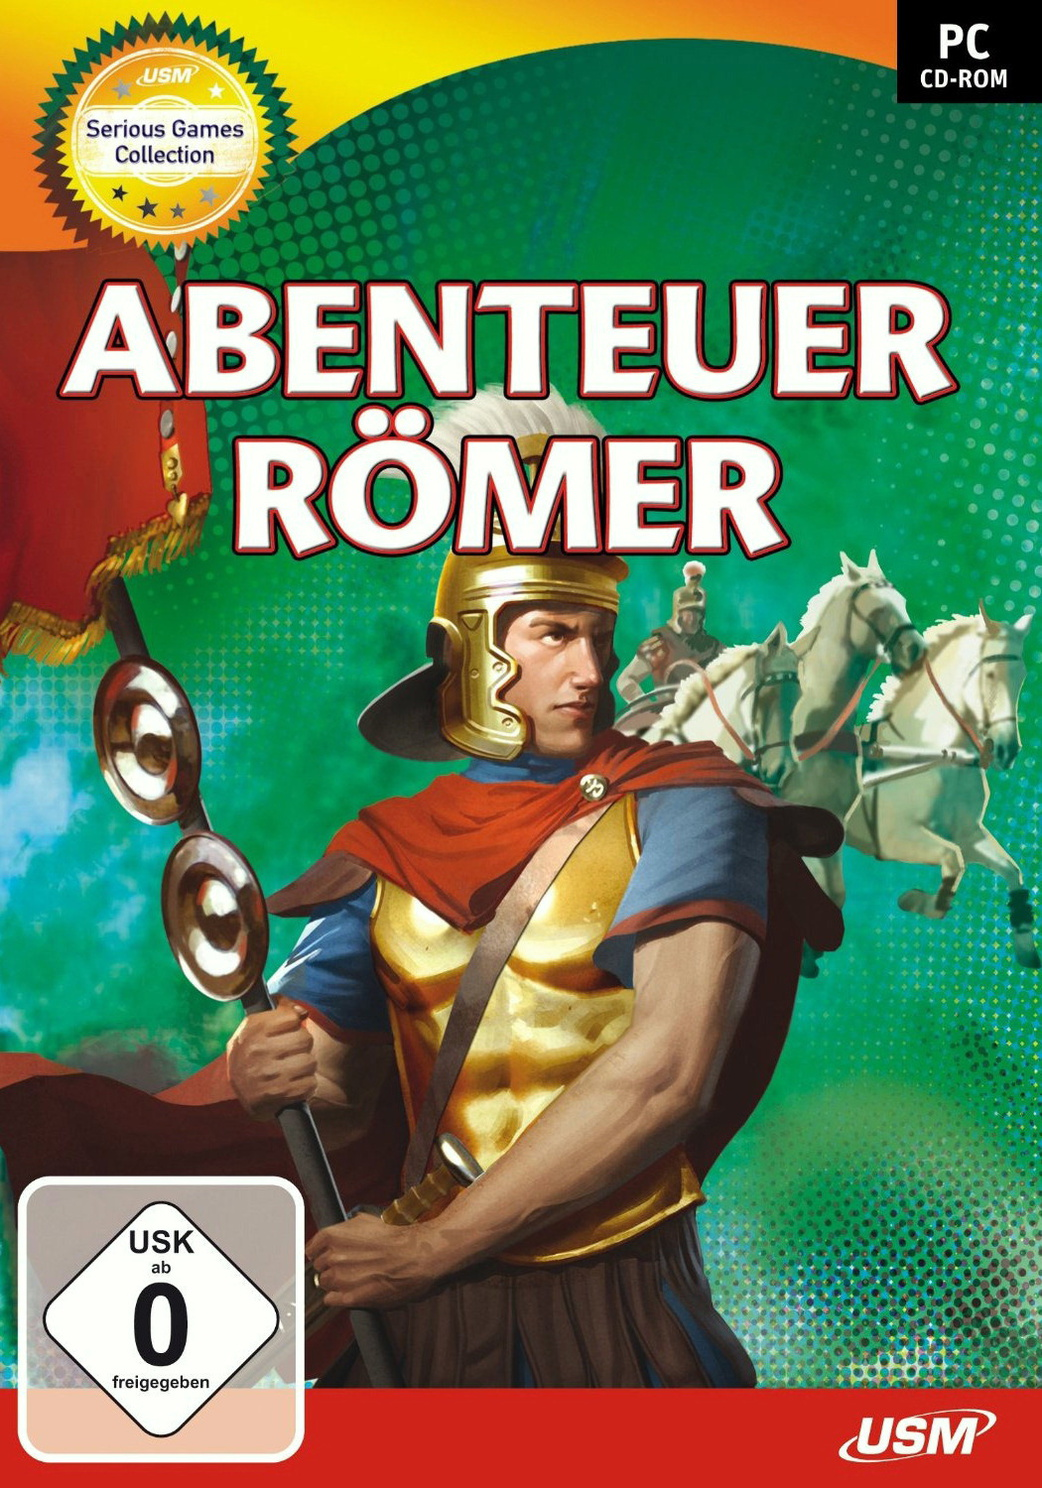 Serious Games Collection: Abenteuer Römer